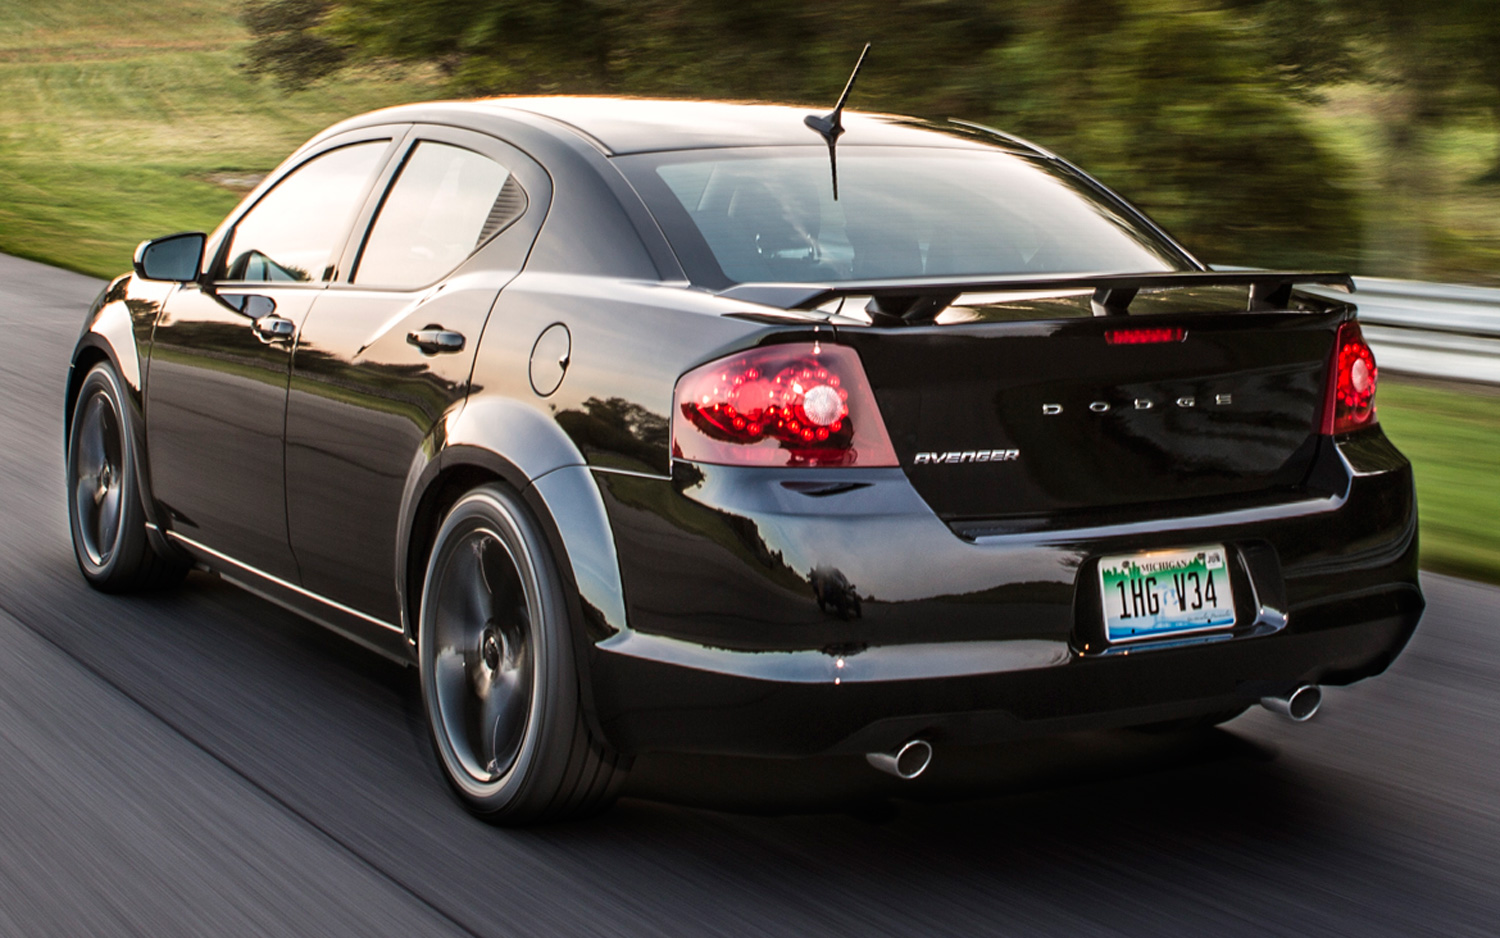 2013 dodge avenger - information and photos - zombiedrive